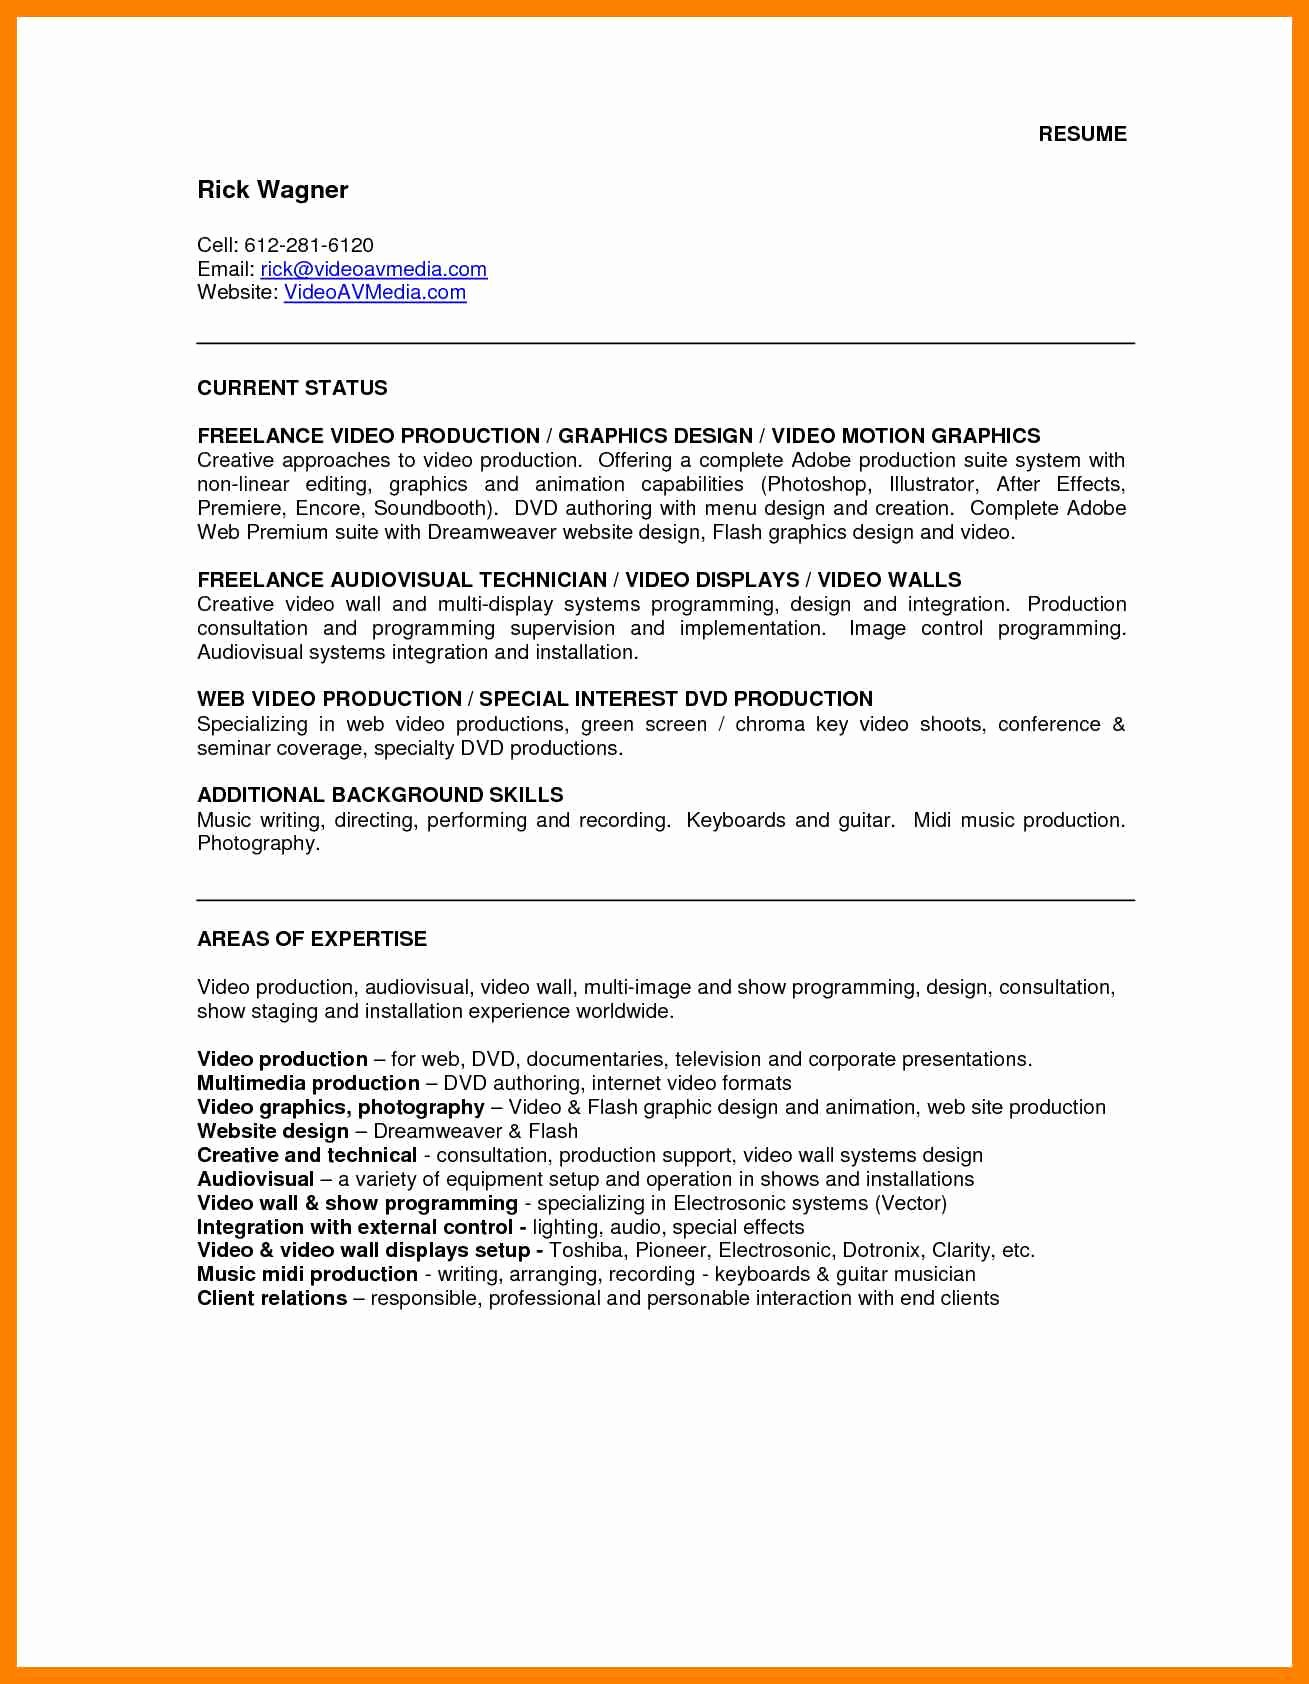 Medical Scribe Cover Letter Example Luxury 6 Medical Scribe Resume